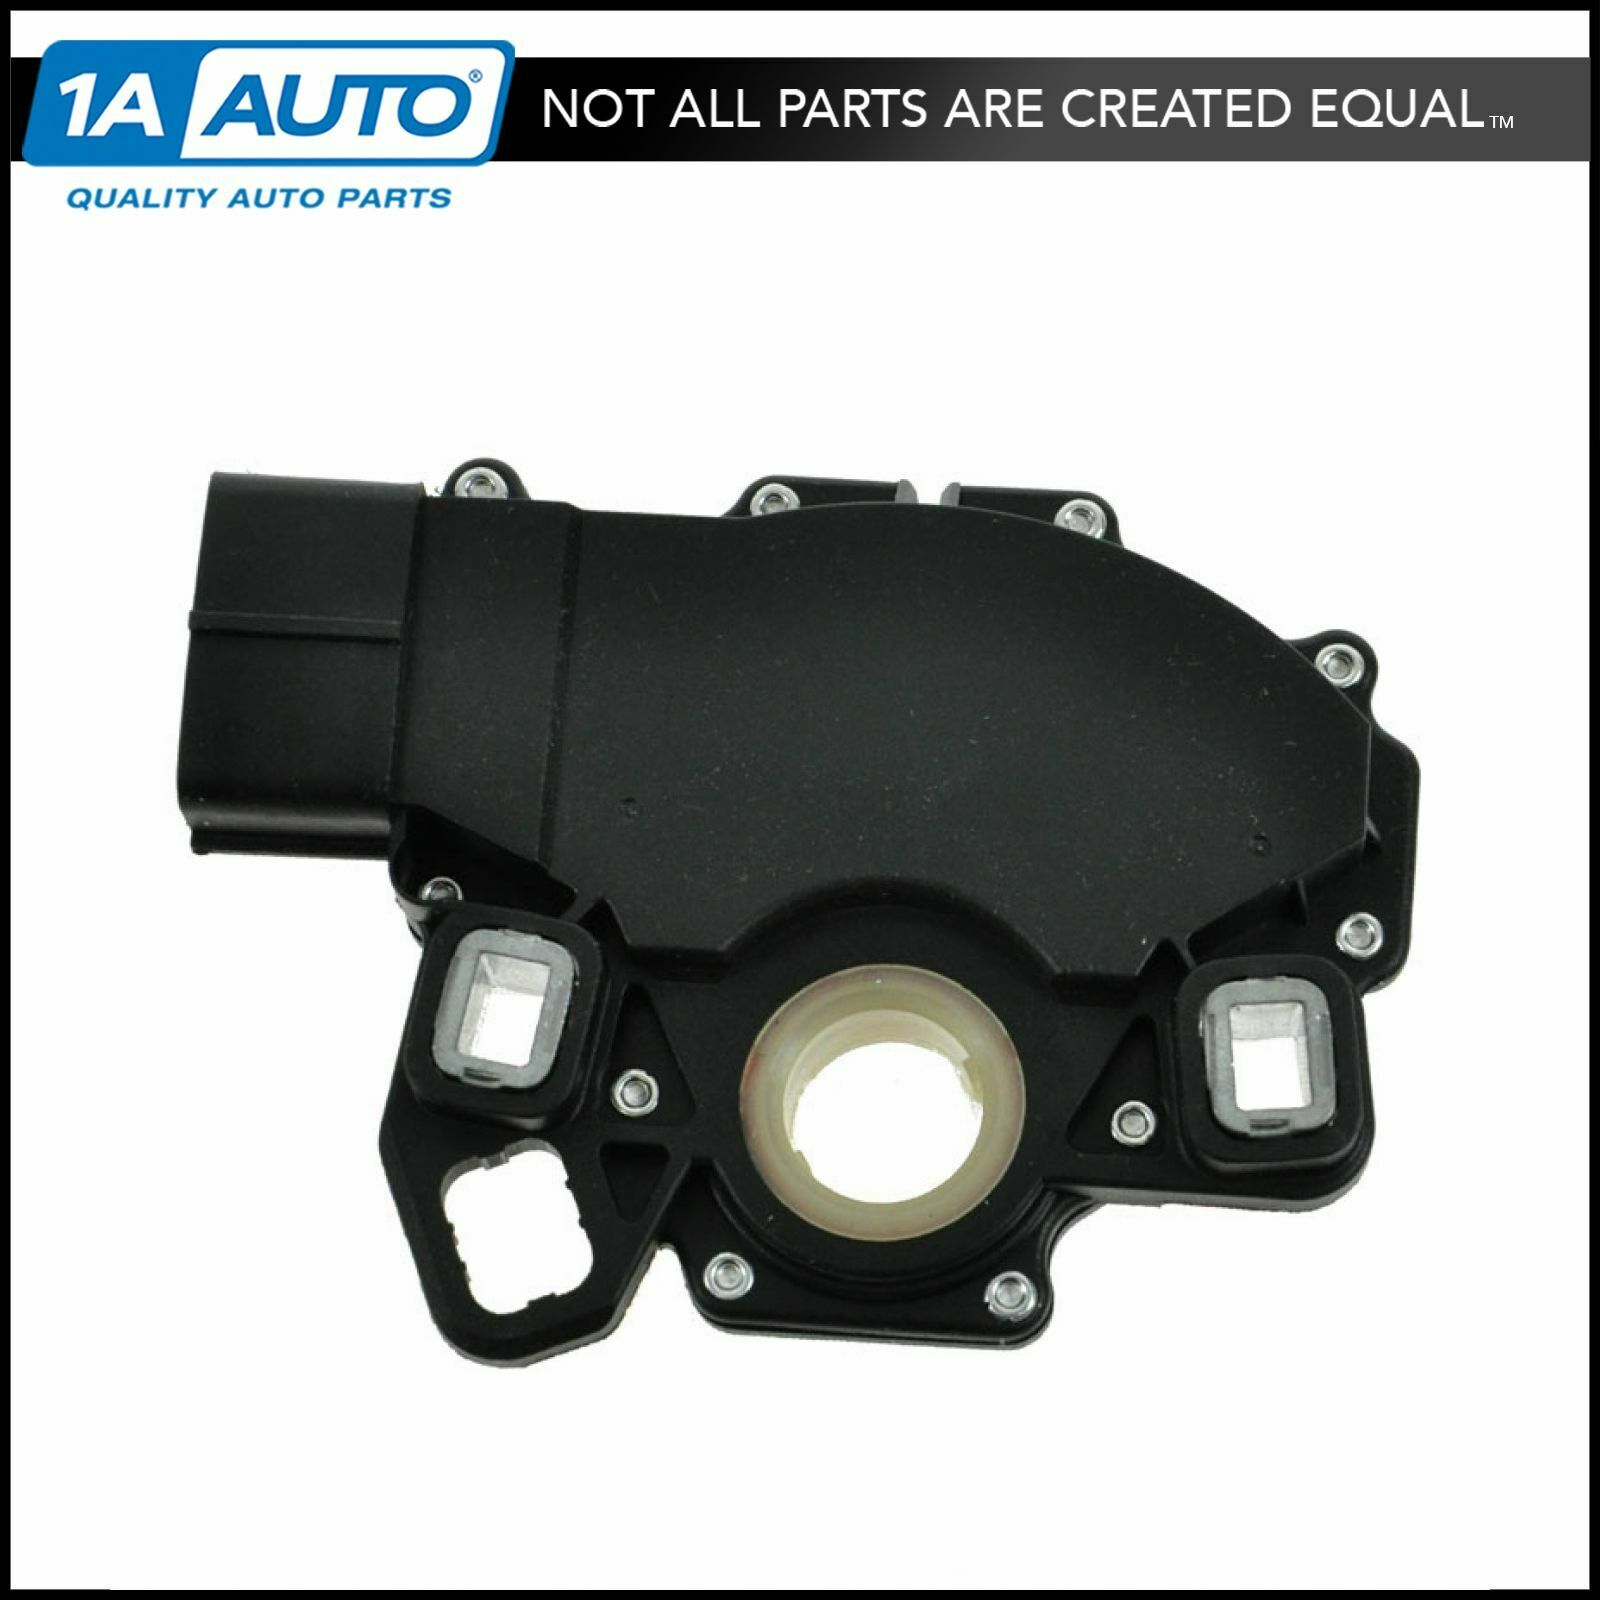 At Automatic Transmission Neutral Safety Switch For Ford Lincoln 1999 Honda Accord Mercury Mazda 1 Of 3only 3 Available